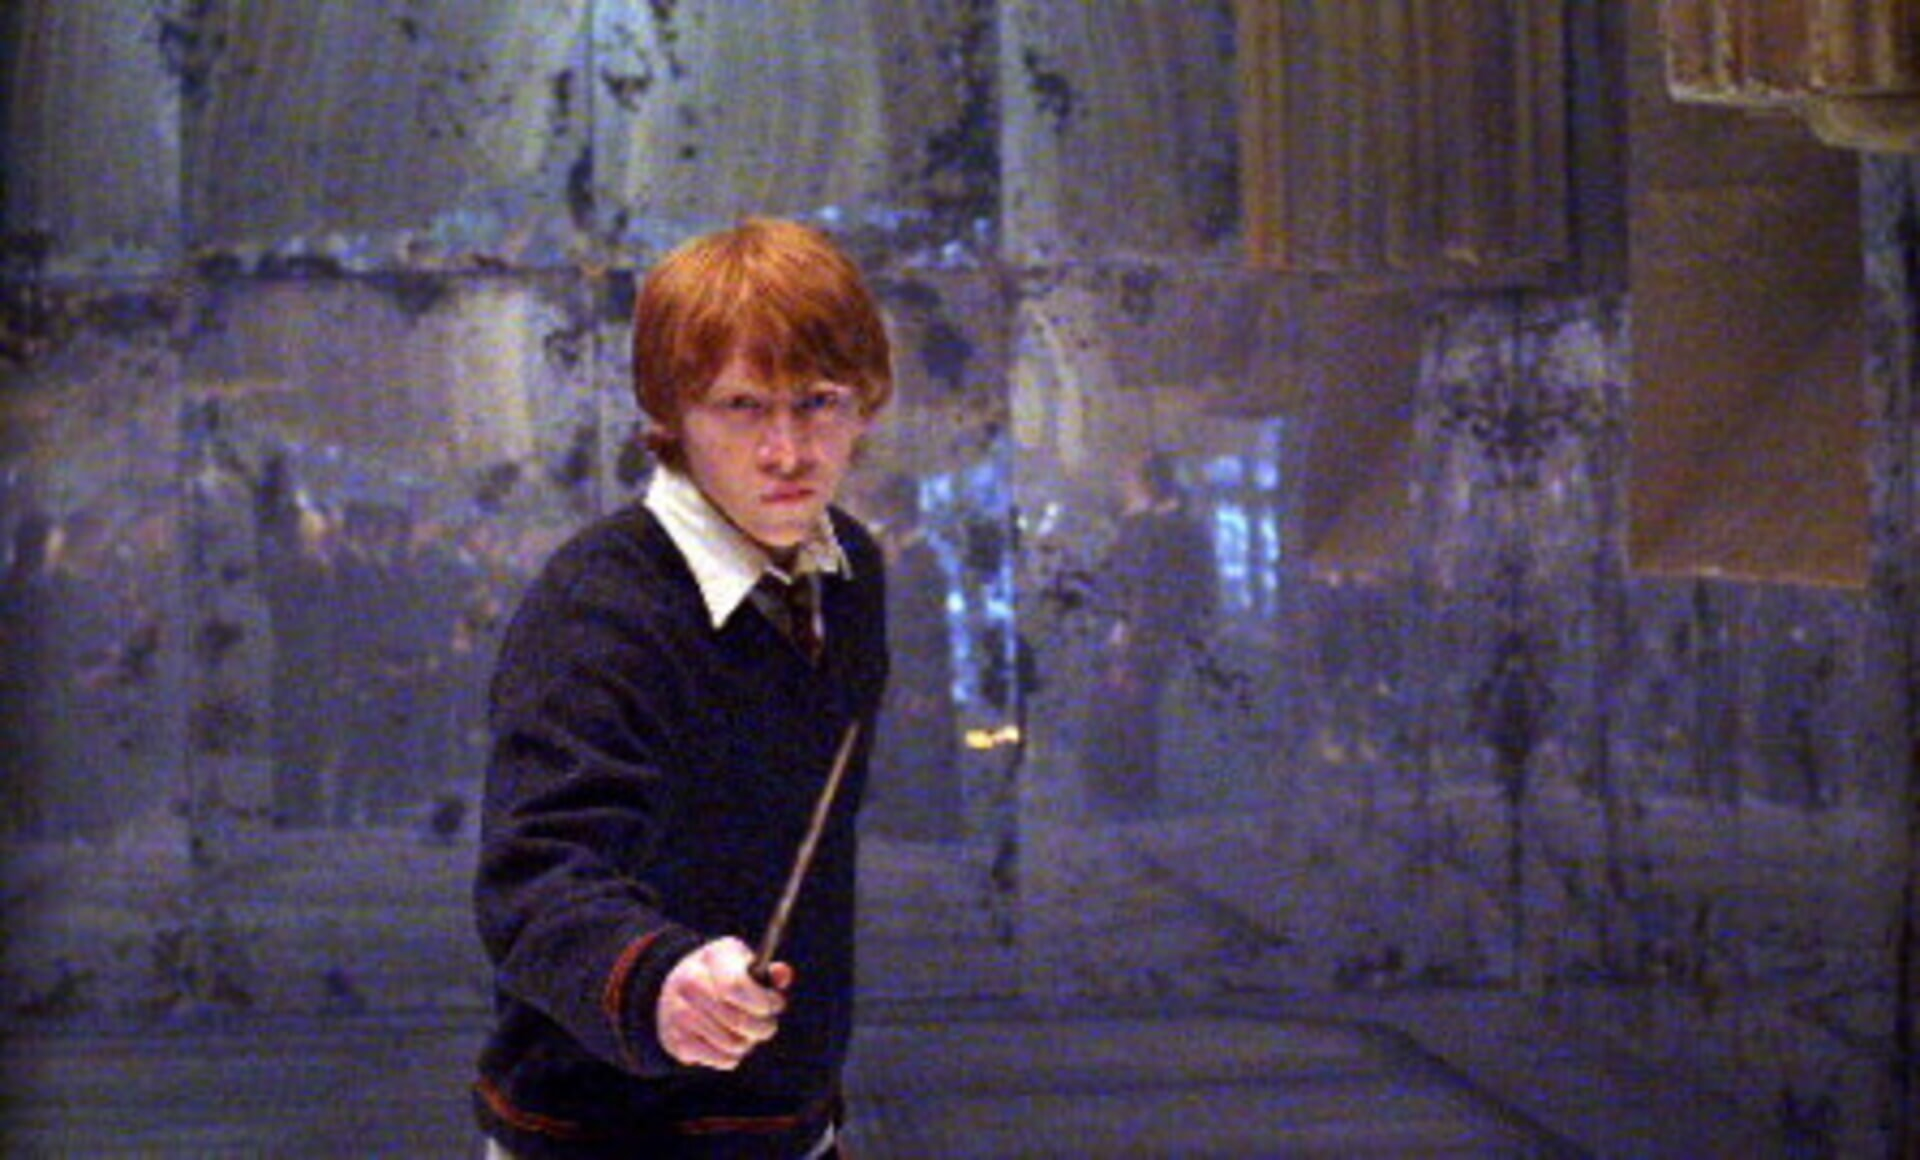 Harry Potter and the Order of the Phoenix - Image 20